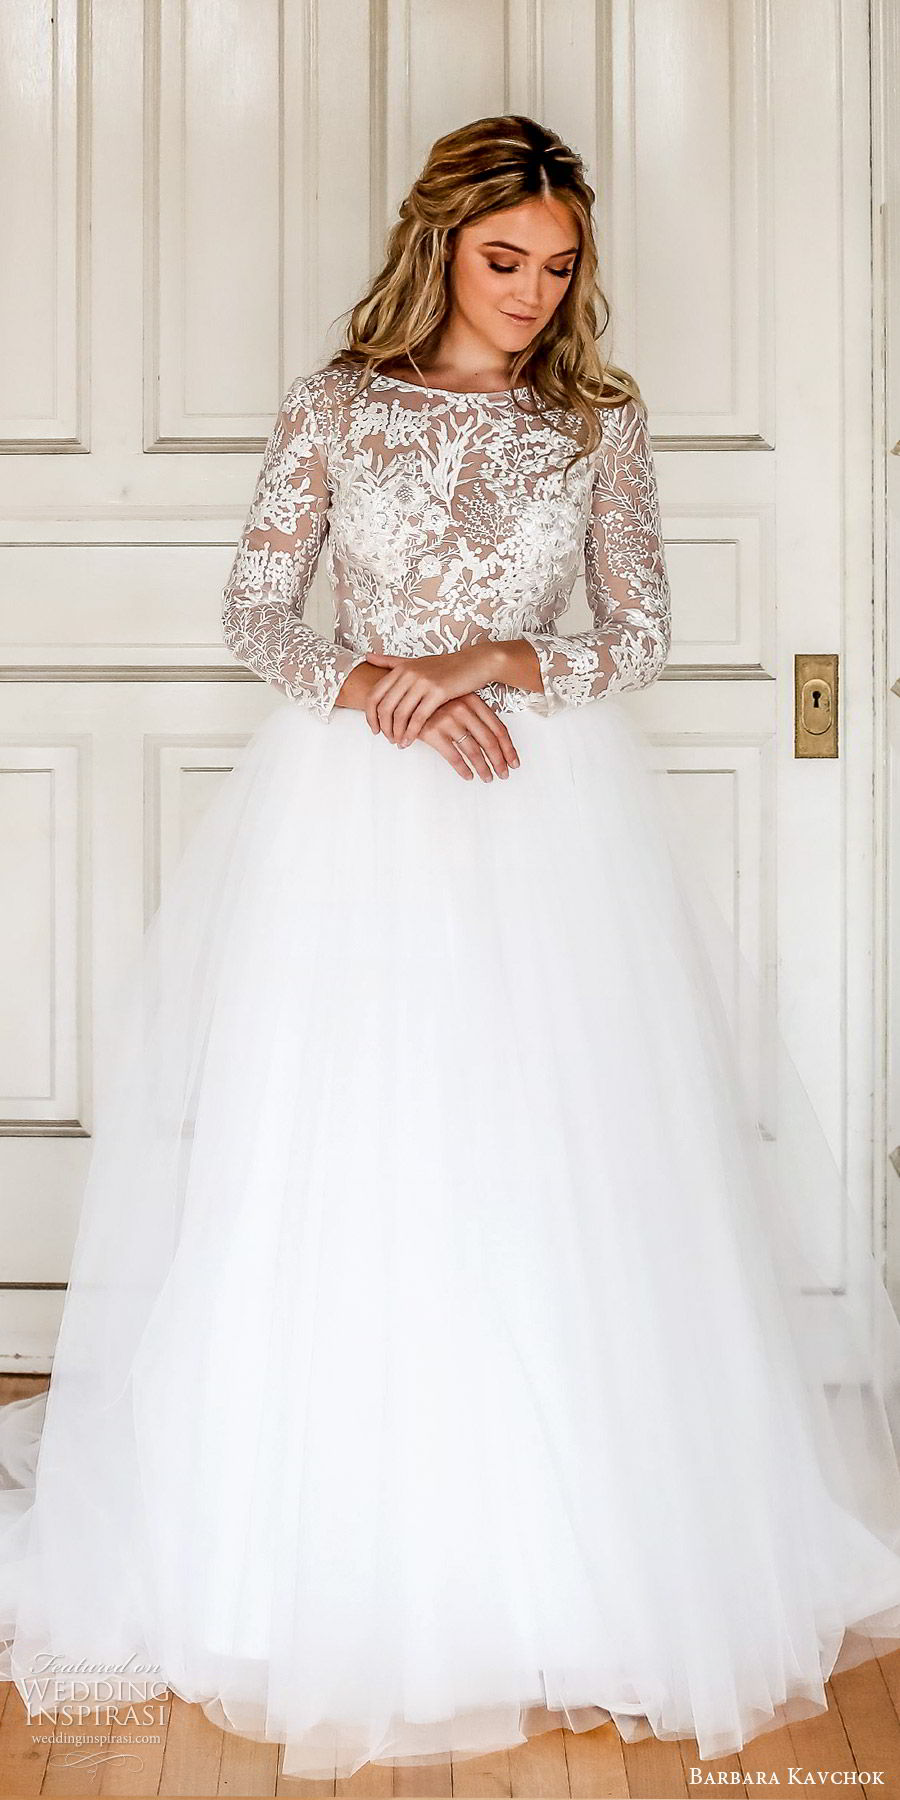 barbara kavchok fall 2019 bridal illusion long sleeves sheer lace bodice a line ball gown wedding dress (13) zv open back chapel train classic romantic